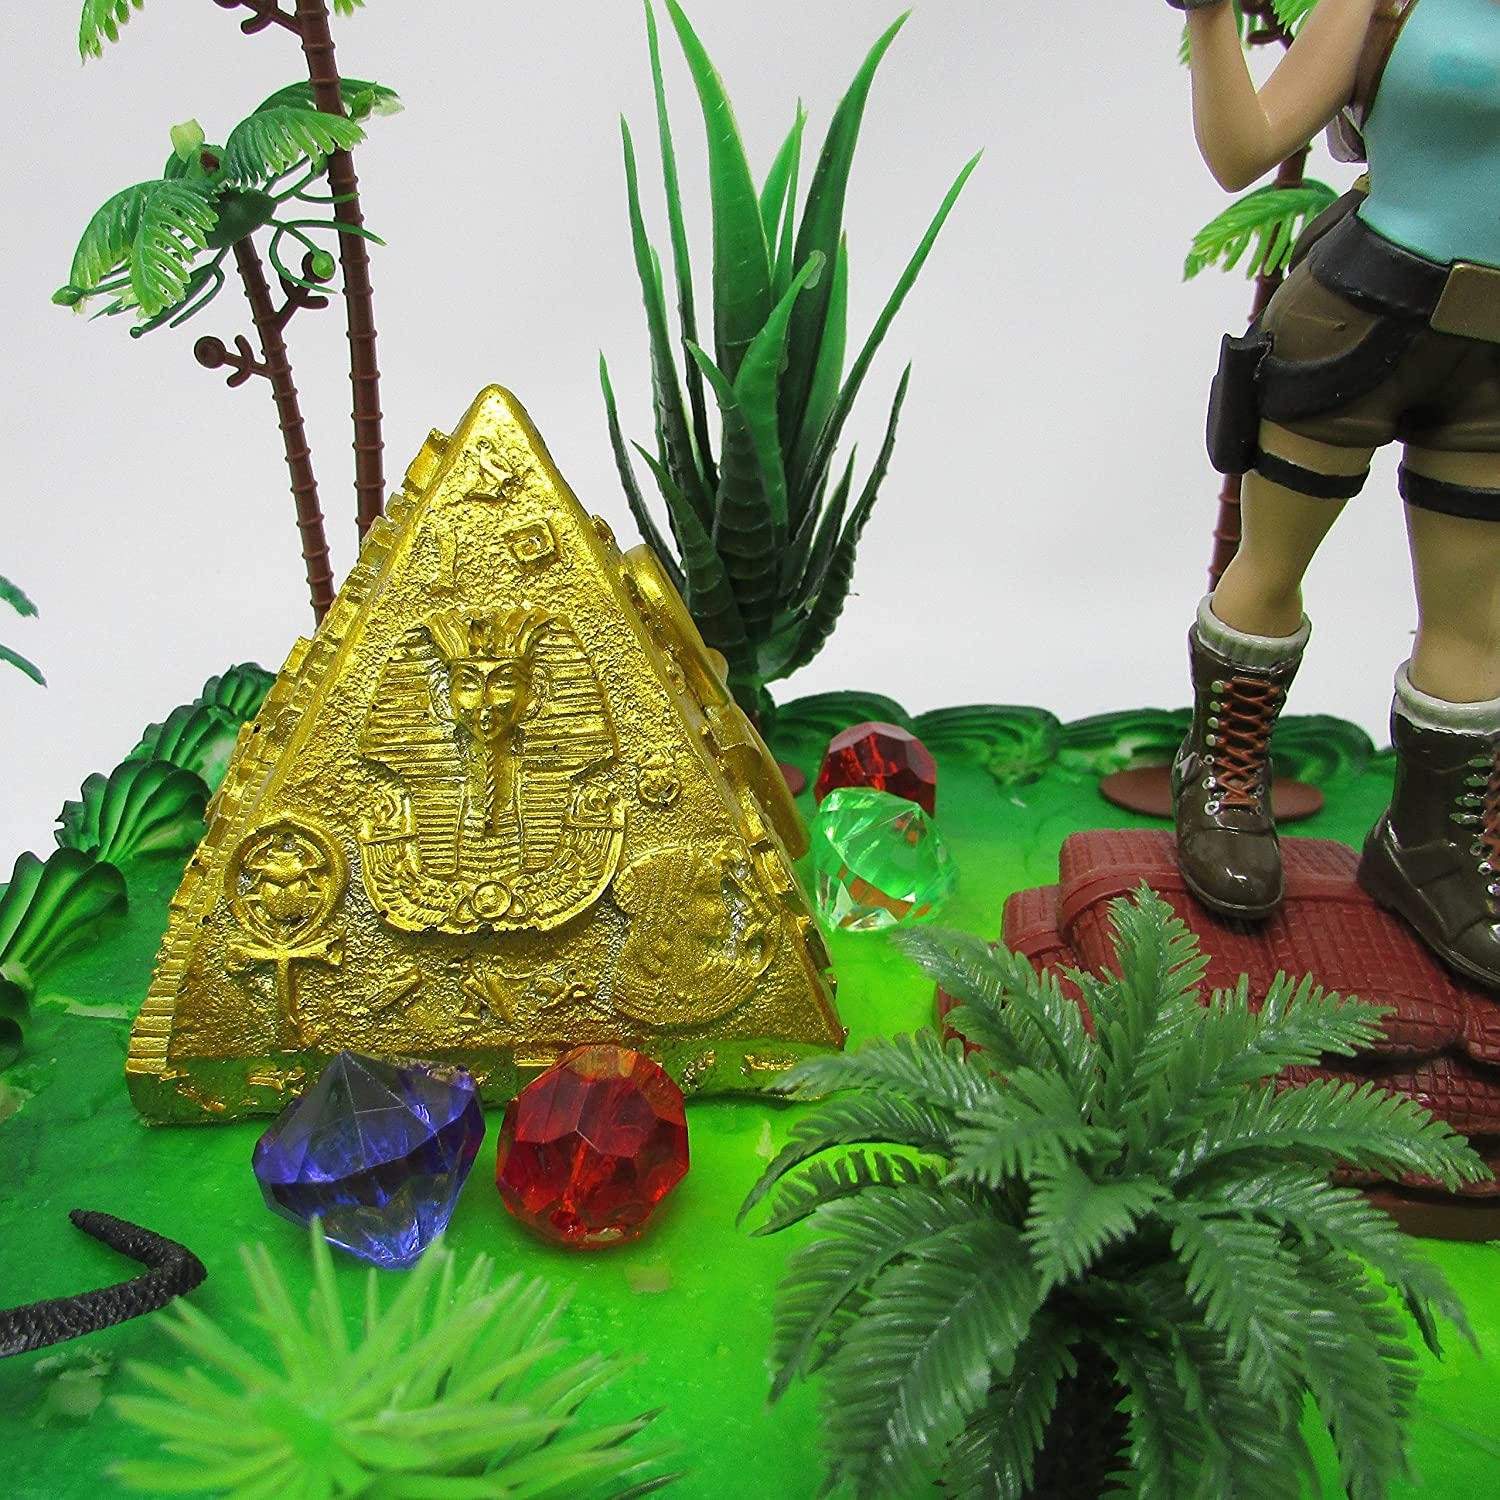 TOMB RAIDER Lara Croft Deluxe Birthday Cake Topper Set Featuring Figure and Decorative Themed Accessories Cake Toppers